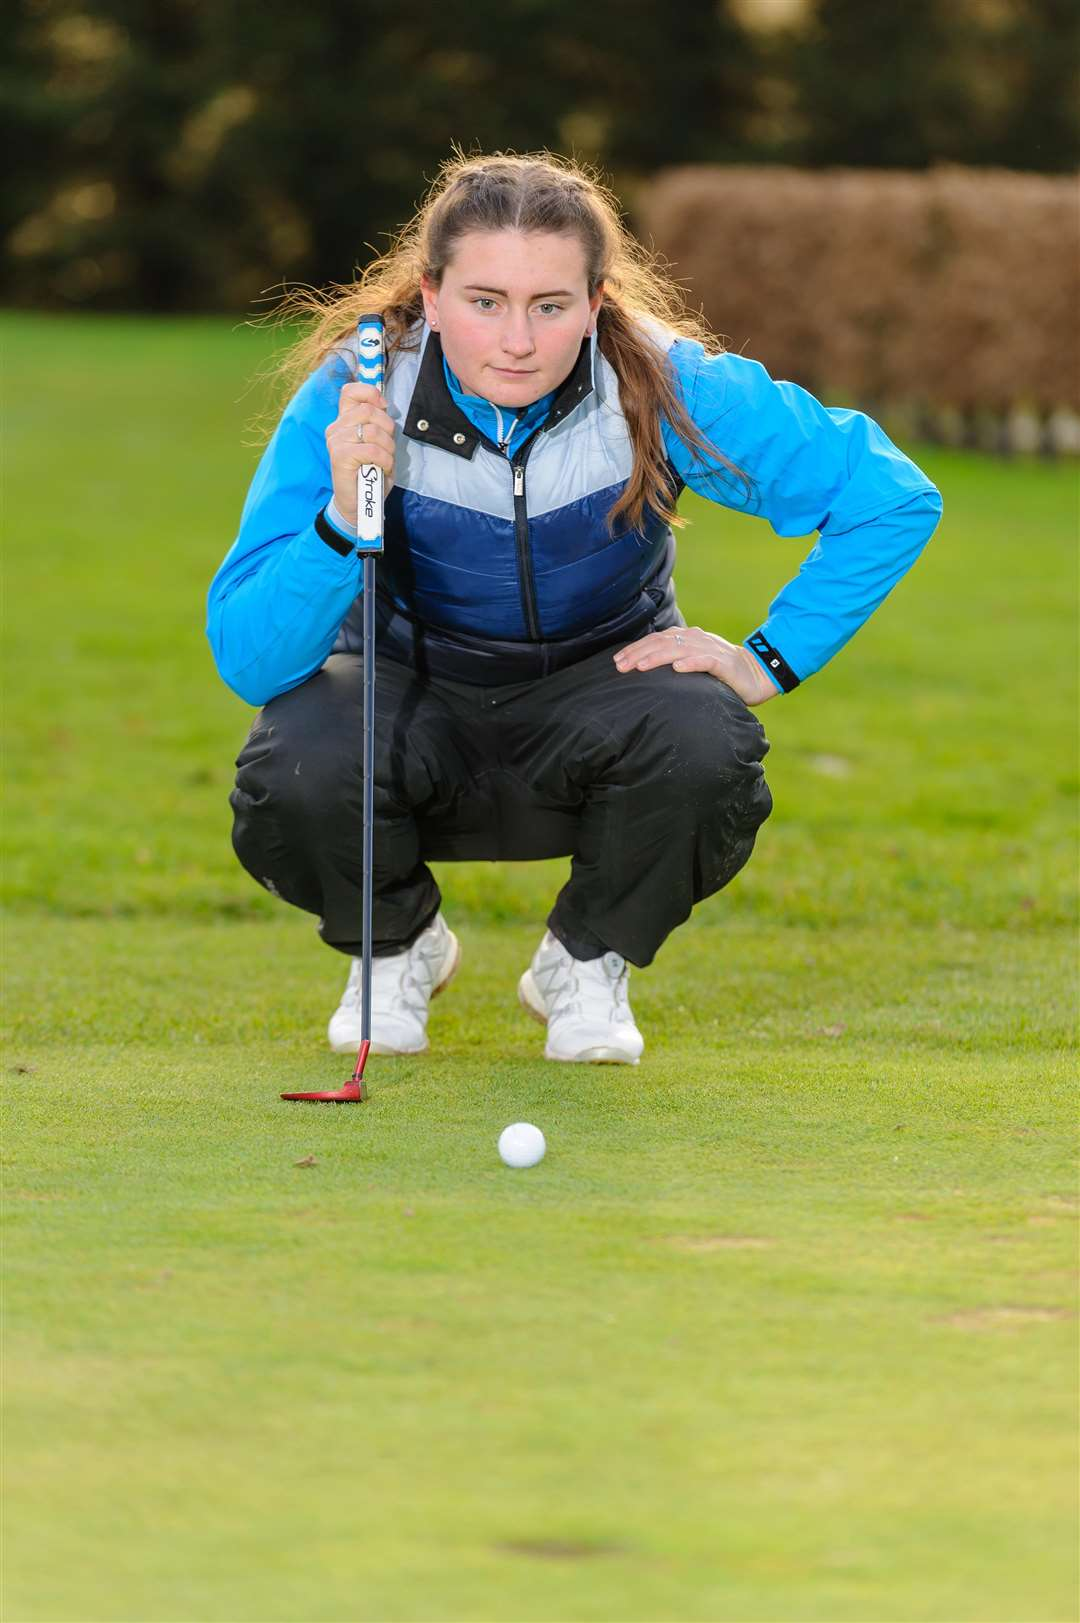 Stoke By Nayland - Golfer Lily May Humphreys, 16 of Great Cornard. ..Picture by Mark Bullimore Photography. (6407427)